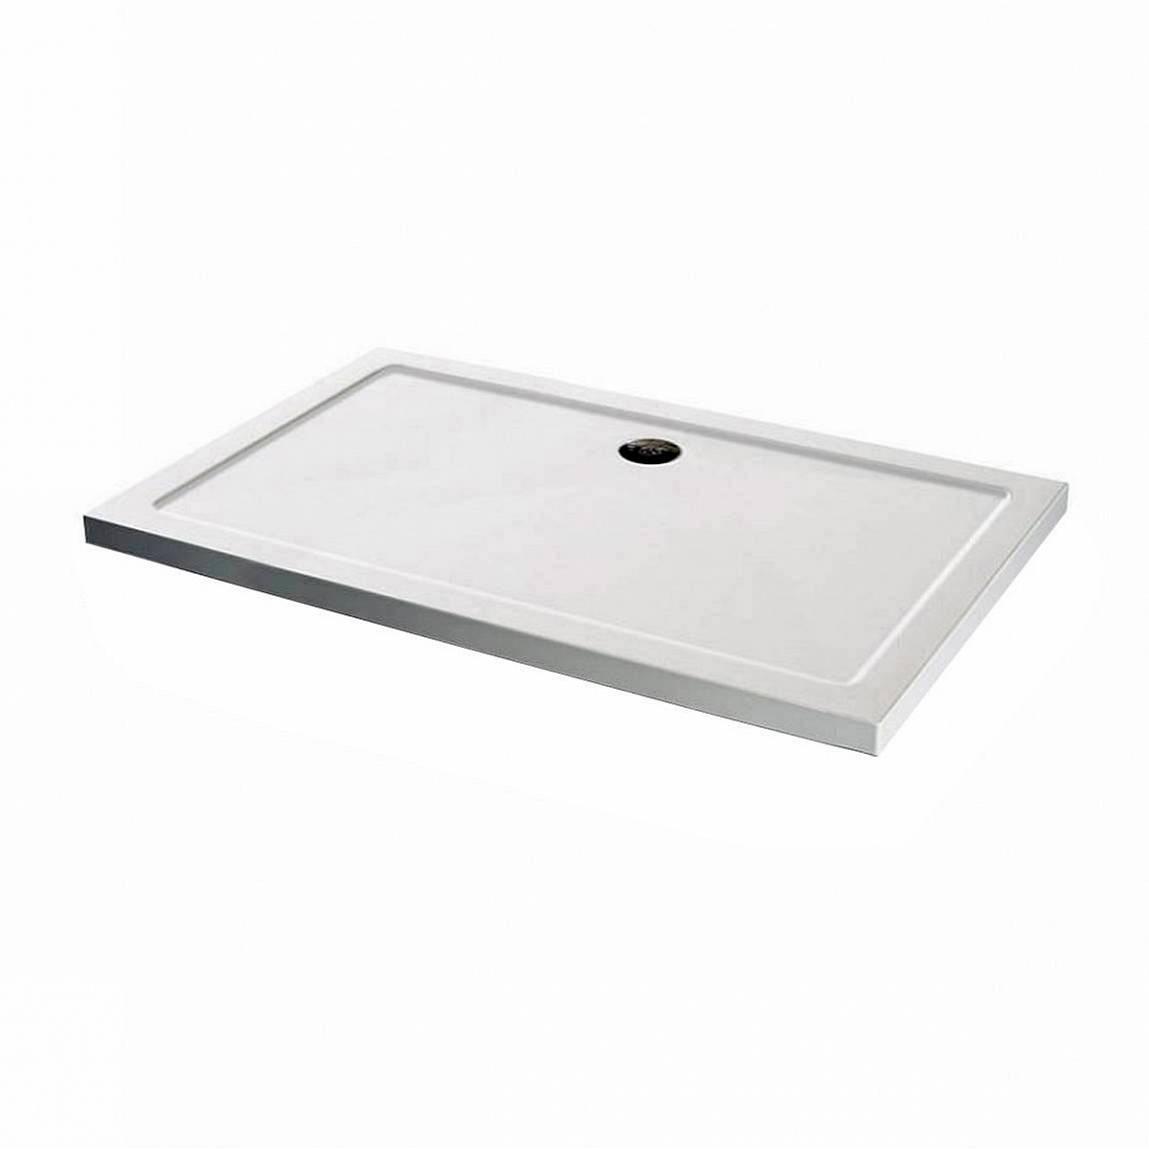 Image of Rectangular Stone Shower Tray 1200 x 800